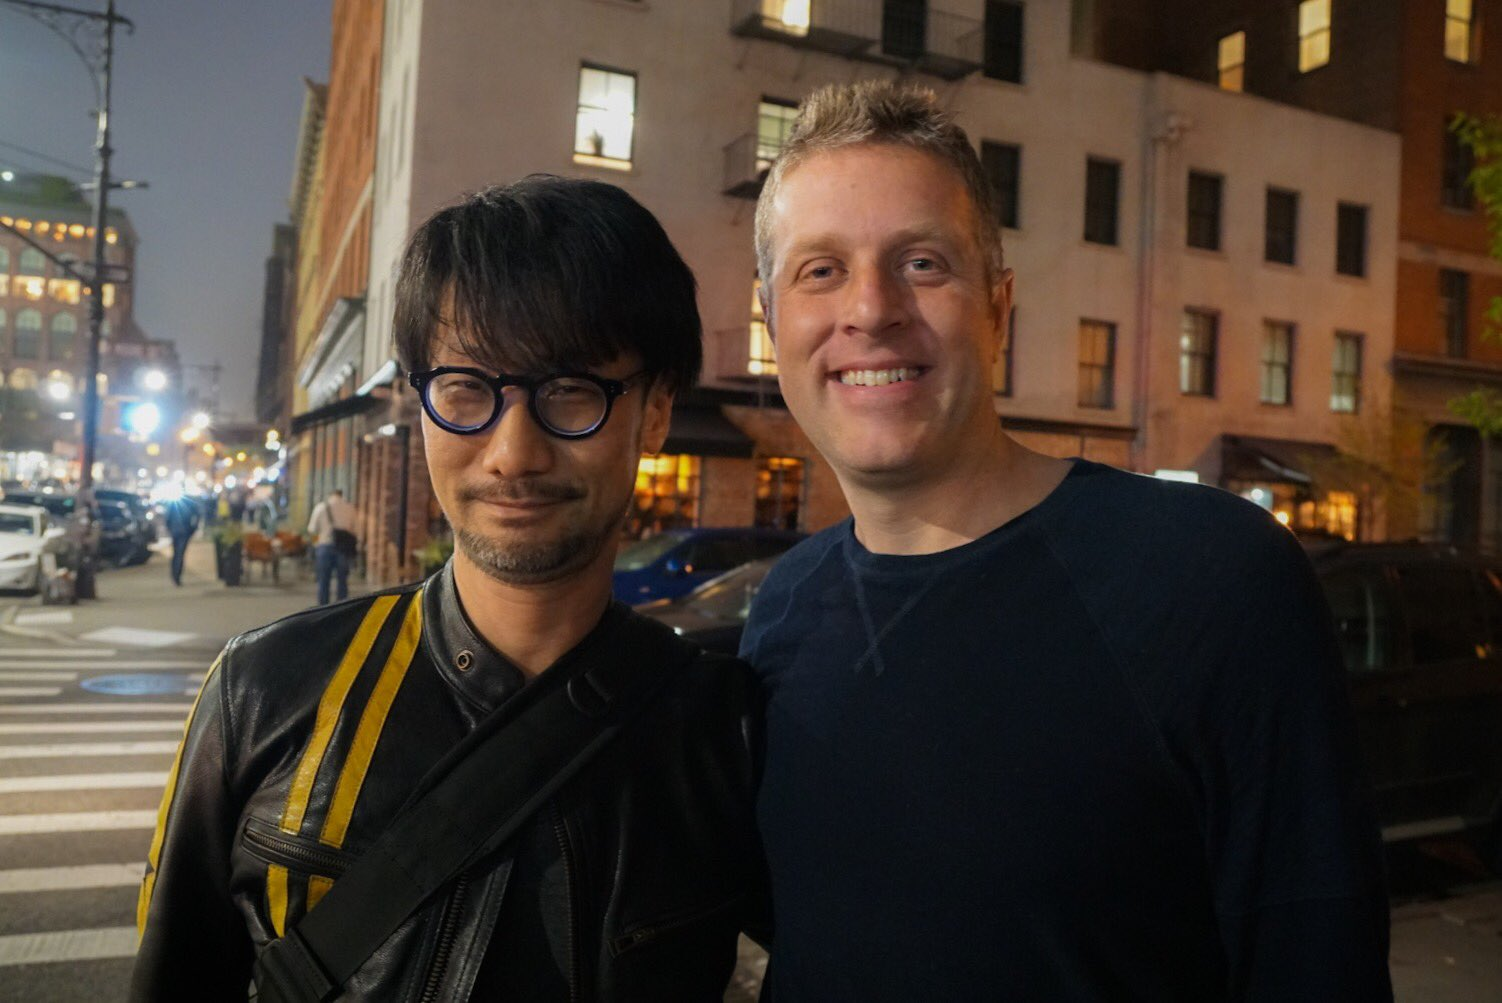 Geoff Keighley's throwing a gamescom presser, and Hideo Kojima is one of the top guests screenshot